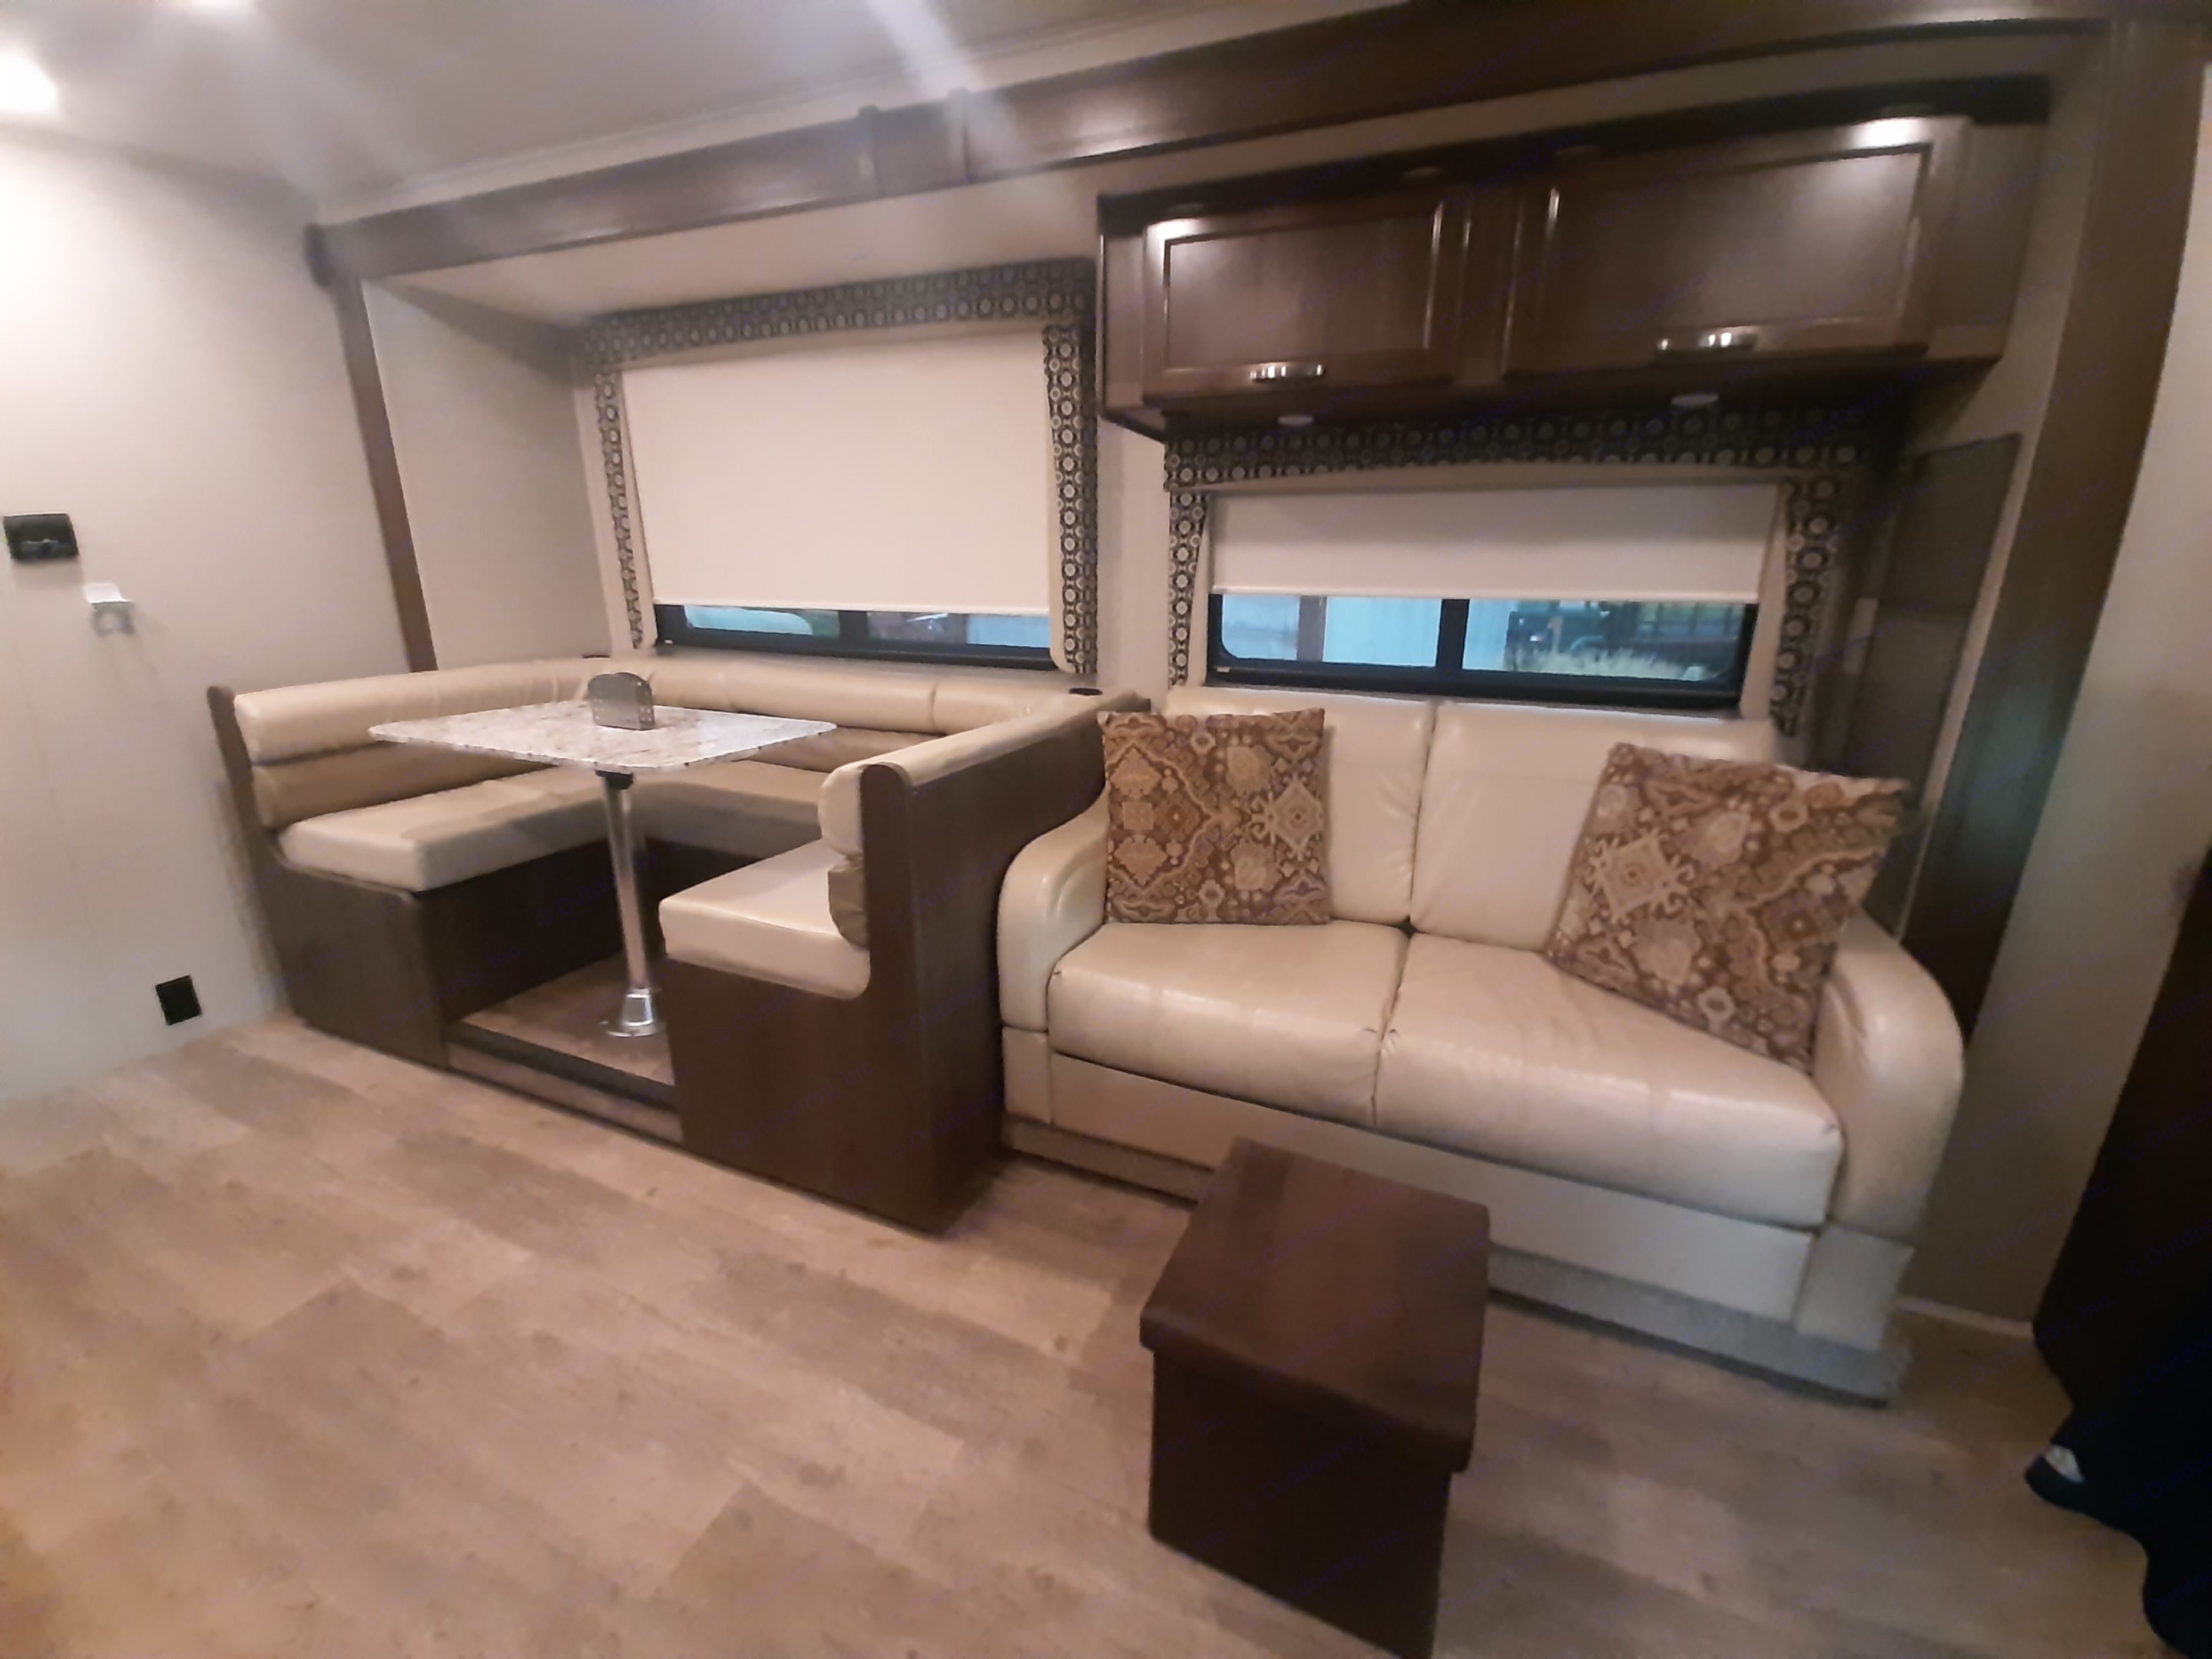 Dinette seats 4 to 6 comfortably, Jack knife sofa folds out into sleeper. Dinette converts into extra sleep area.. Jayco Redhawk 2018